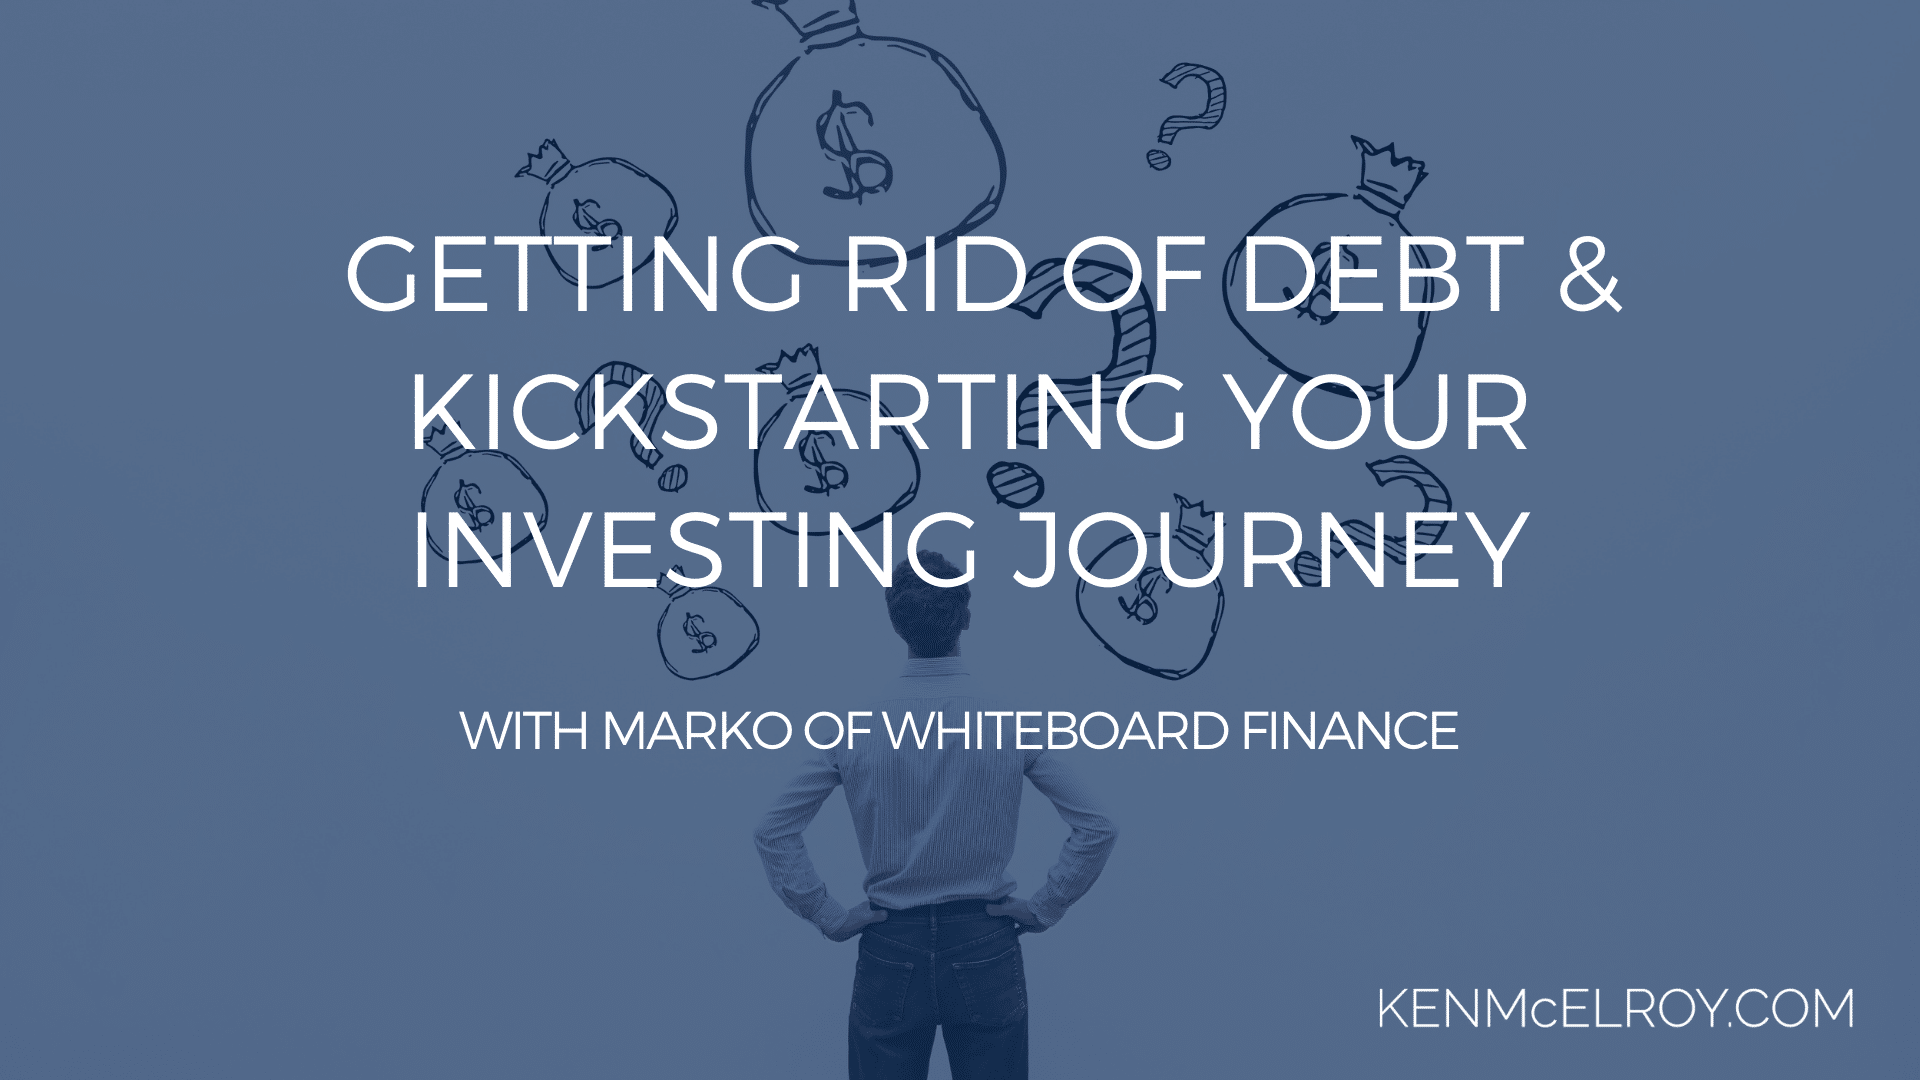 Getting Rid of Debt Kickstarting Your Investing Journey | Ken McElroy Image